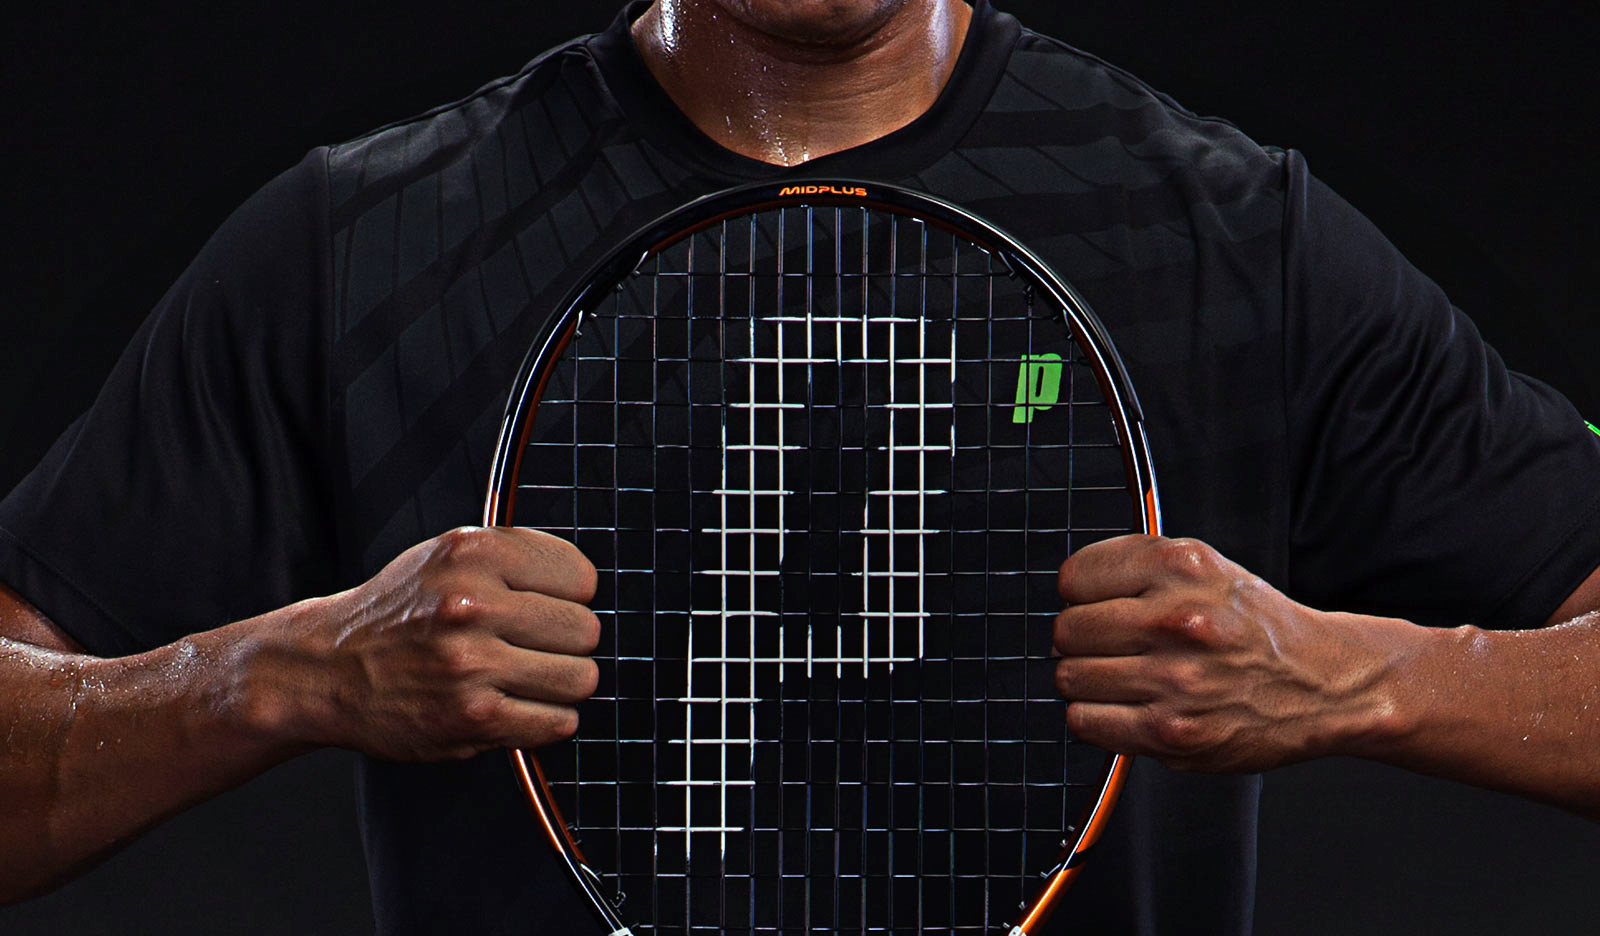 The ideal string pattern for your tennis racket